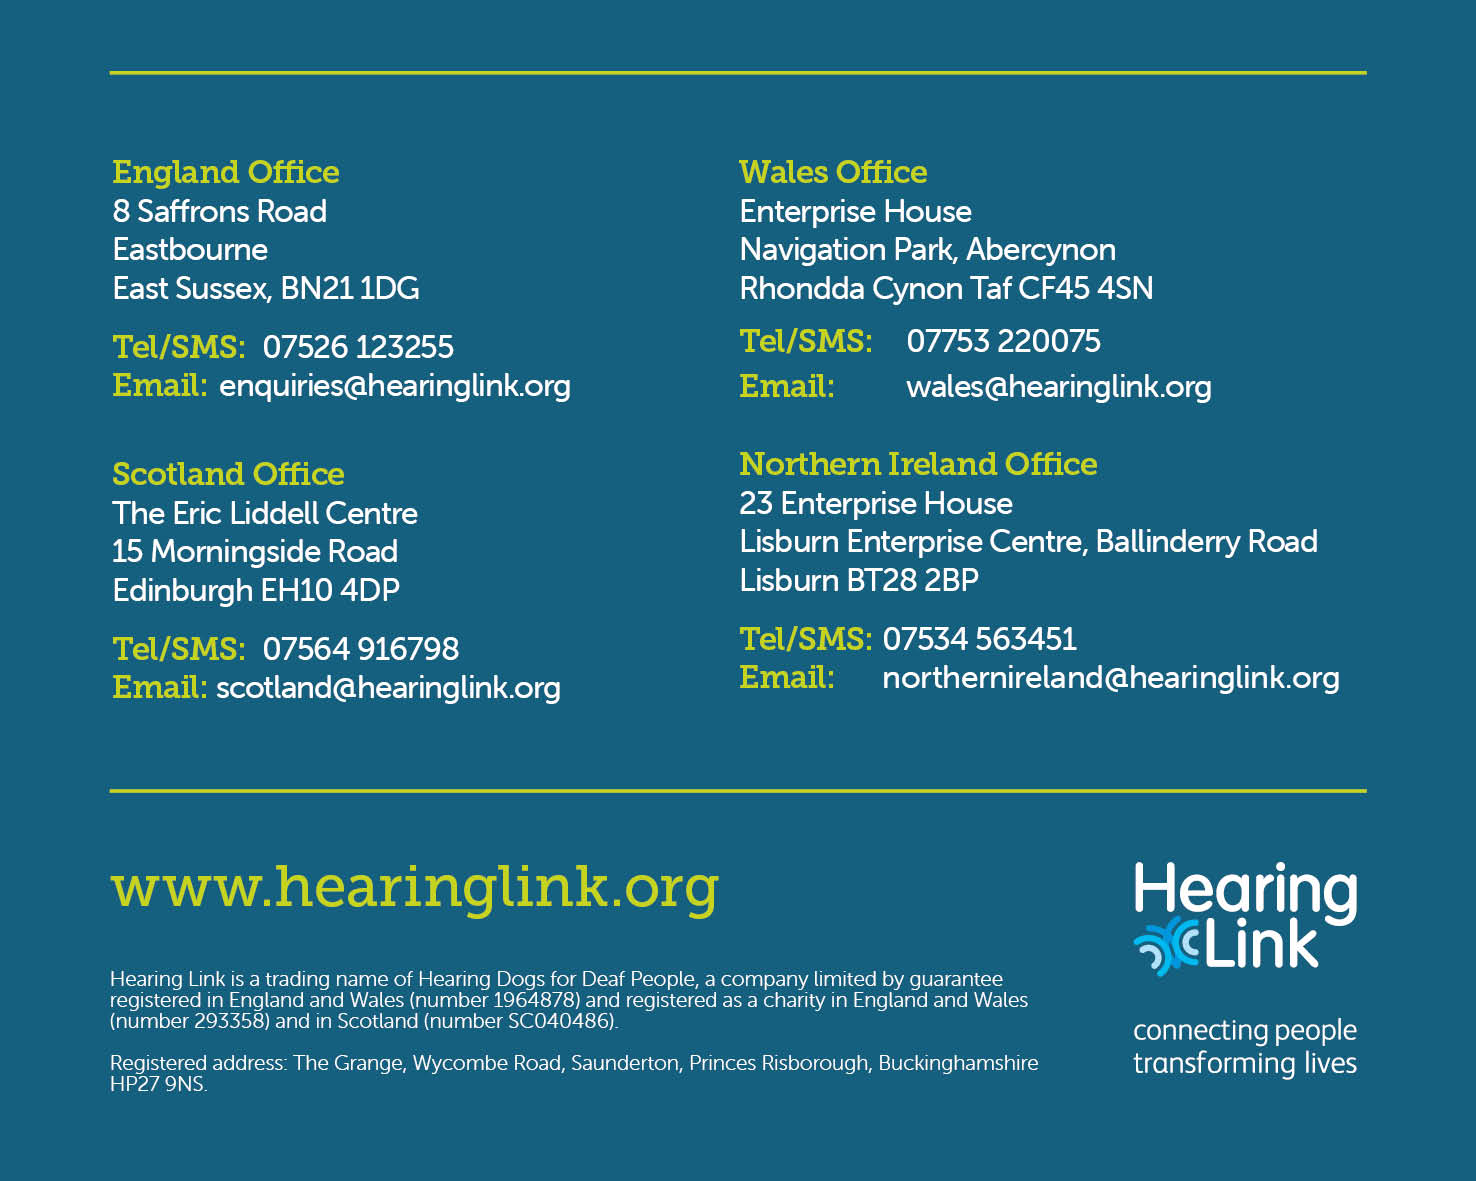 Contact Hearing Link - UK Offices